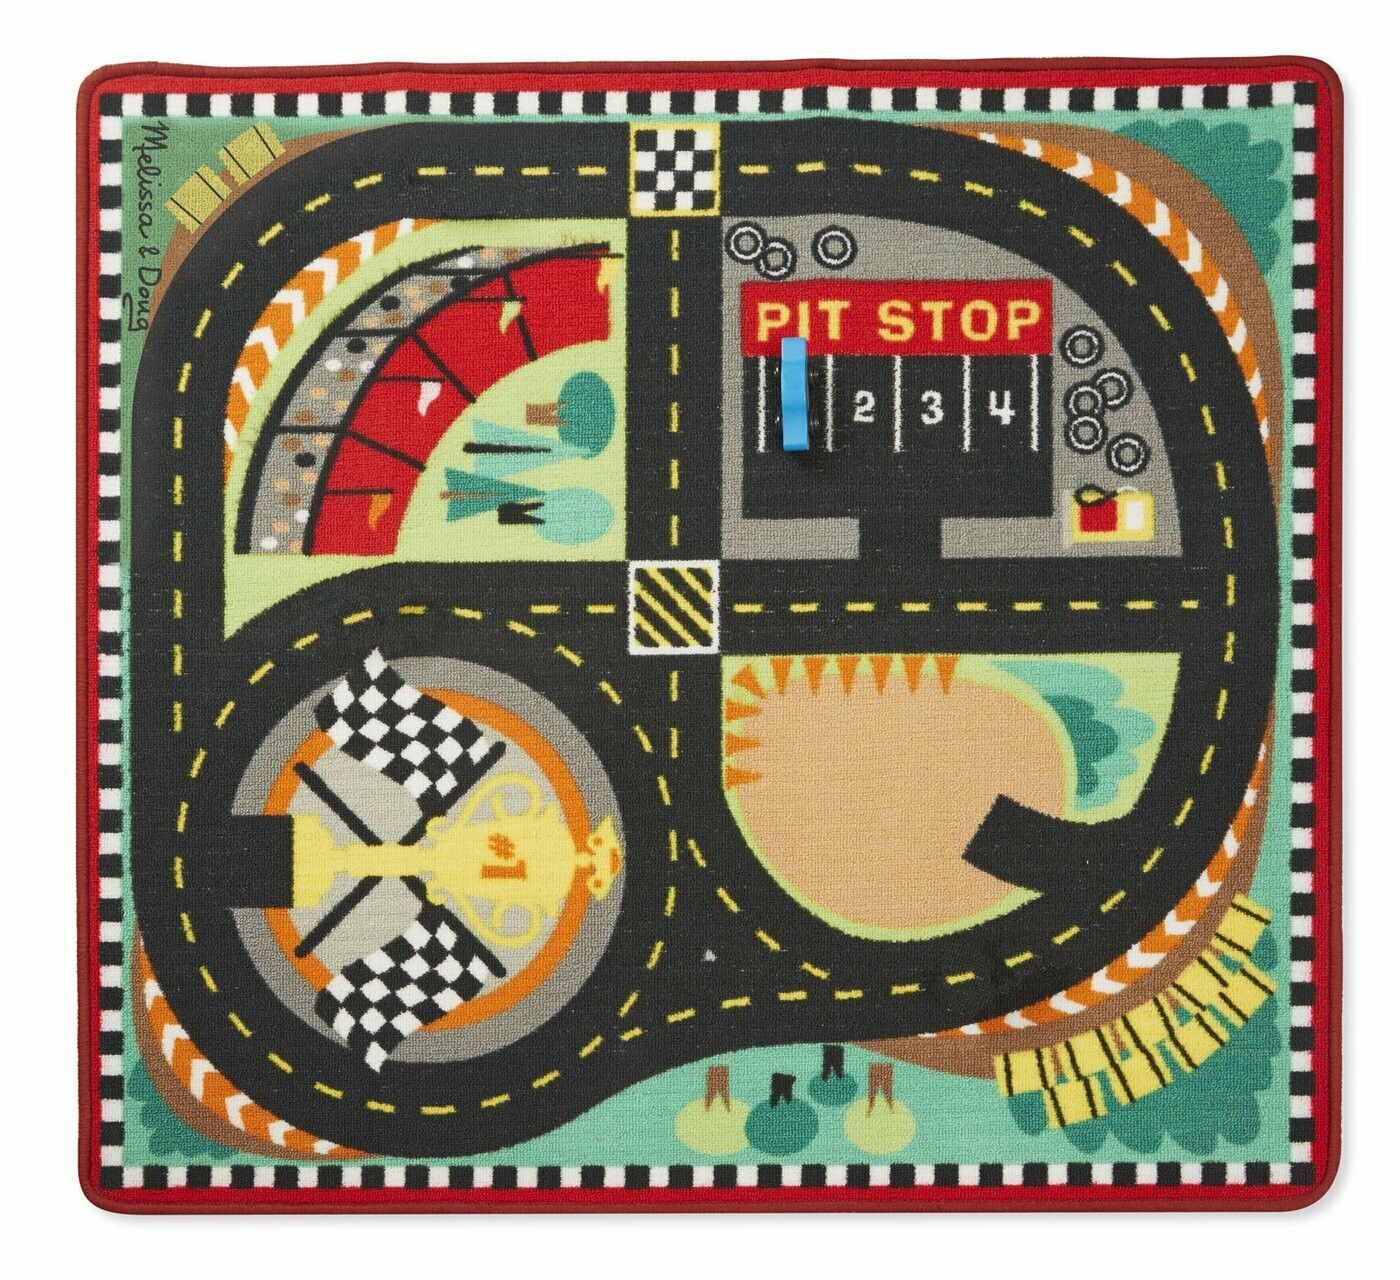 9401-ME ROUND THE SPEEDWAY RACE TRACK RUG - RED